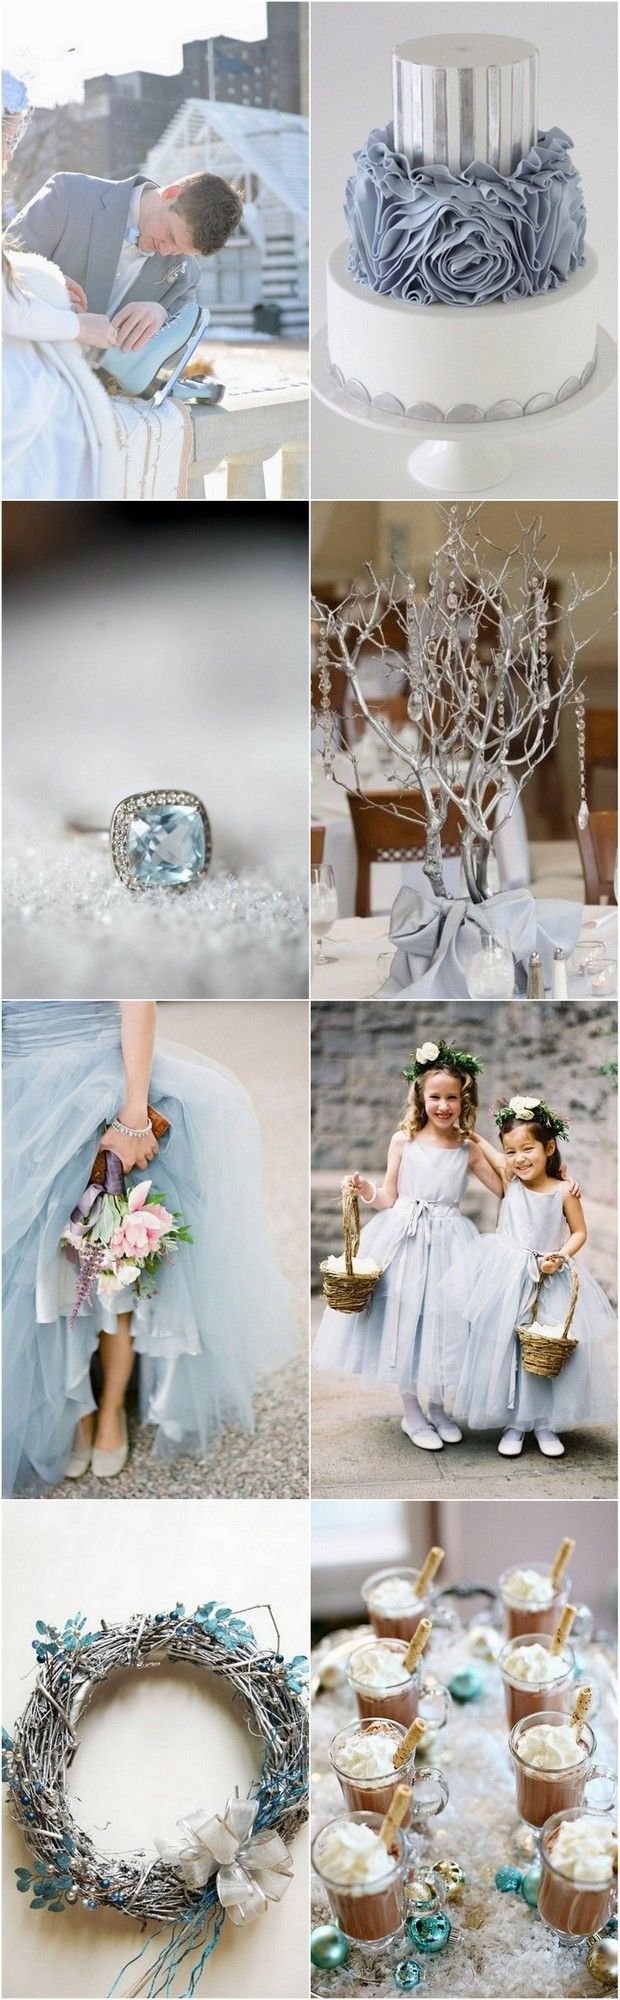 your ultimate winter wonderland wedding inspiration & ideas